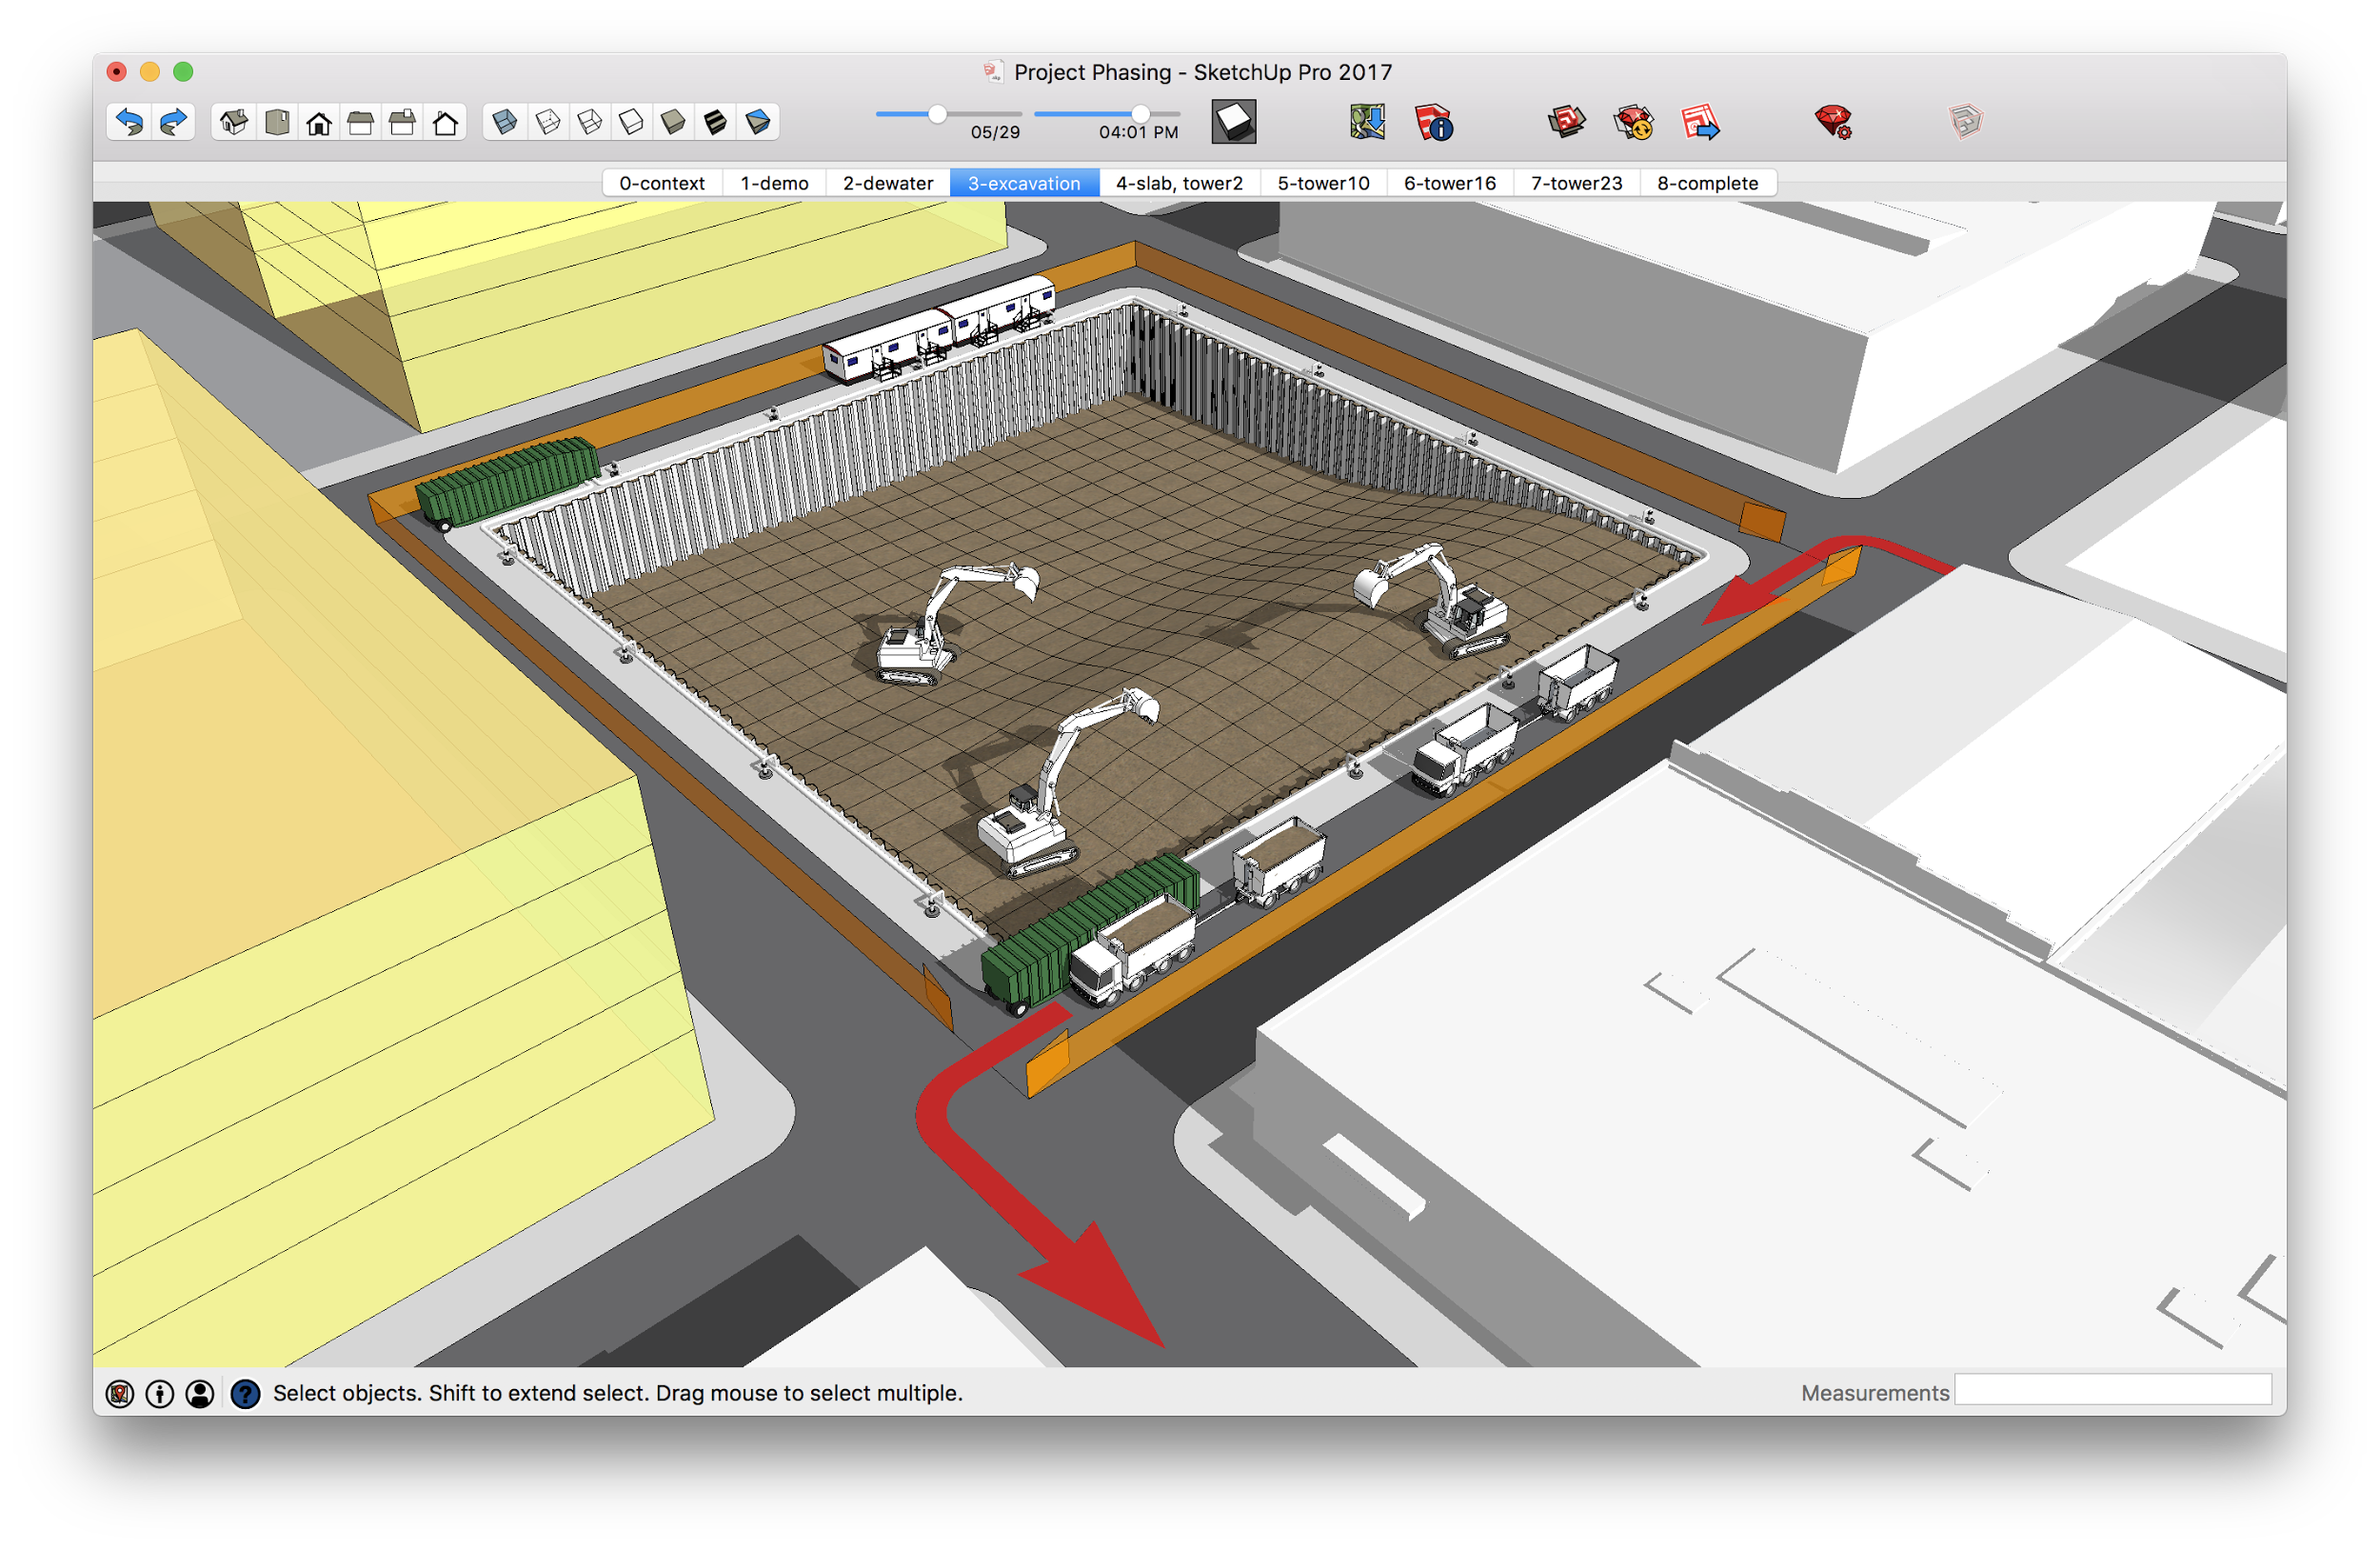 11 Free Bim Software Tools To Consider G2 Crowd Download Rg Wiring Diagram Push Pull Chief Architect Premier Users Can Access More Than 800 Plugins From Sketchup That Manage Specific Tasks